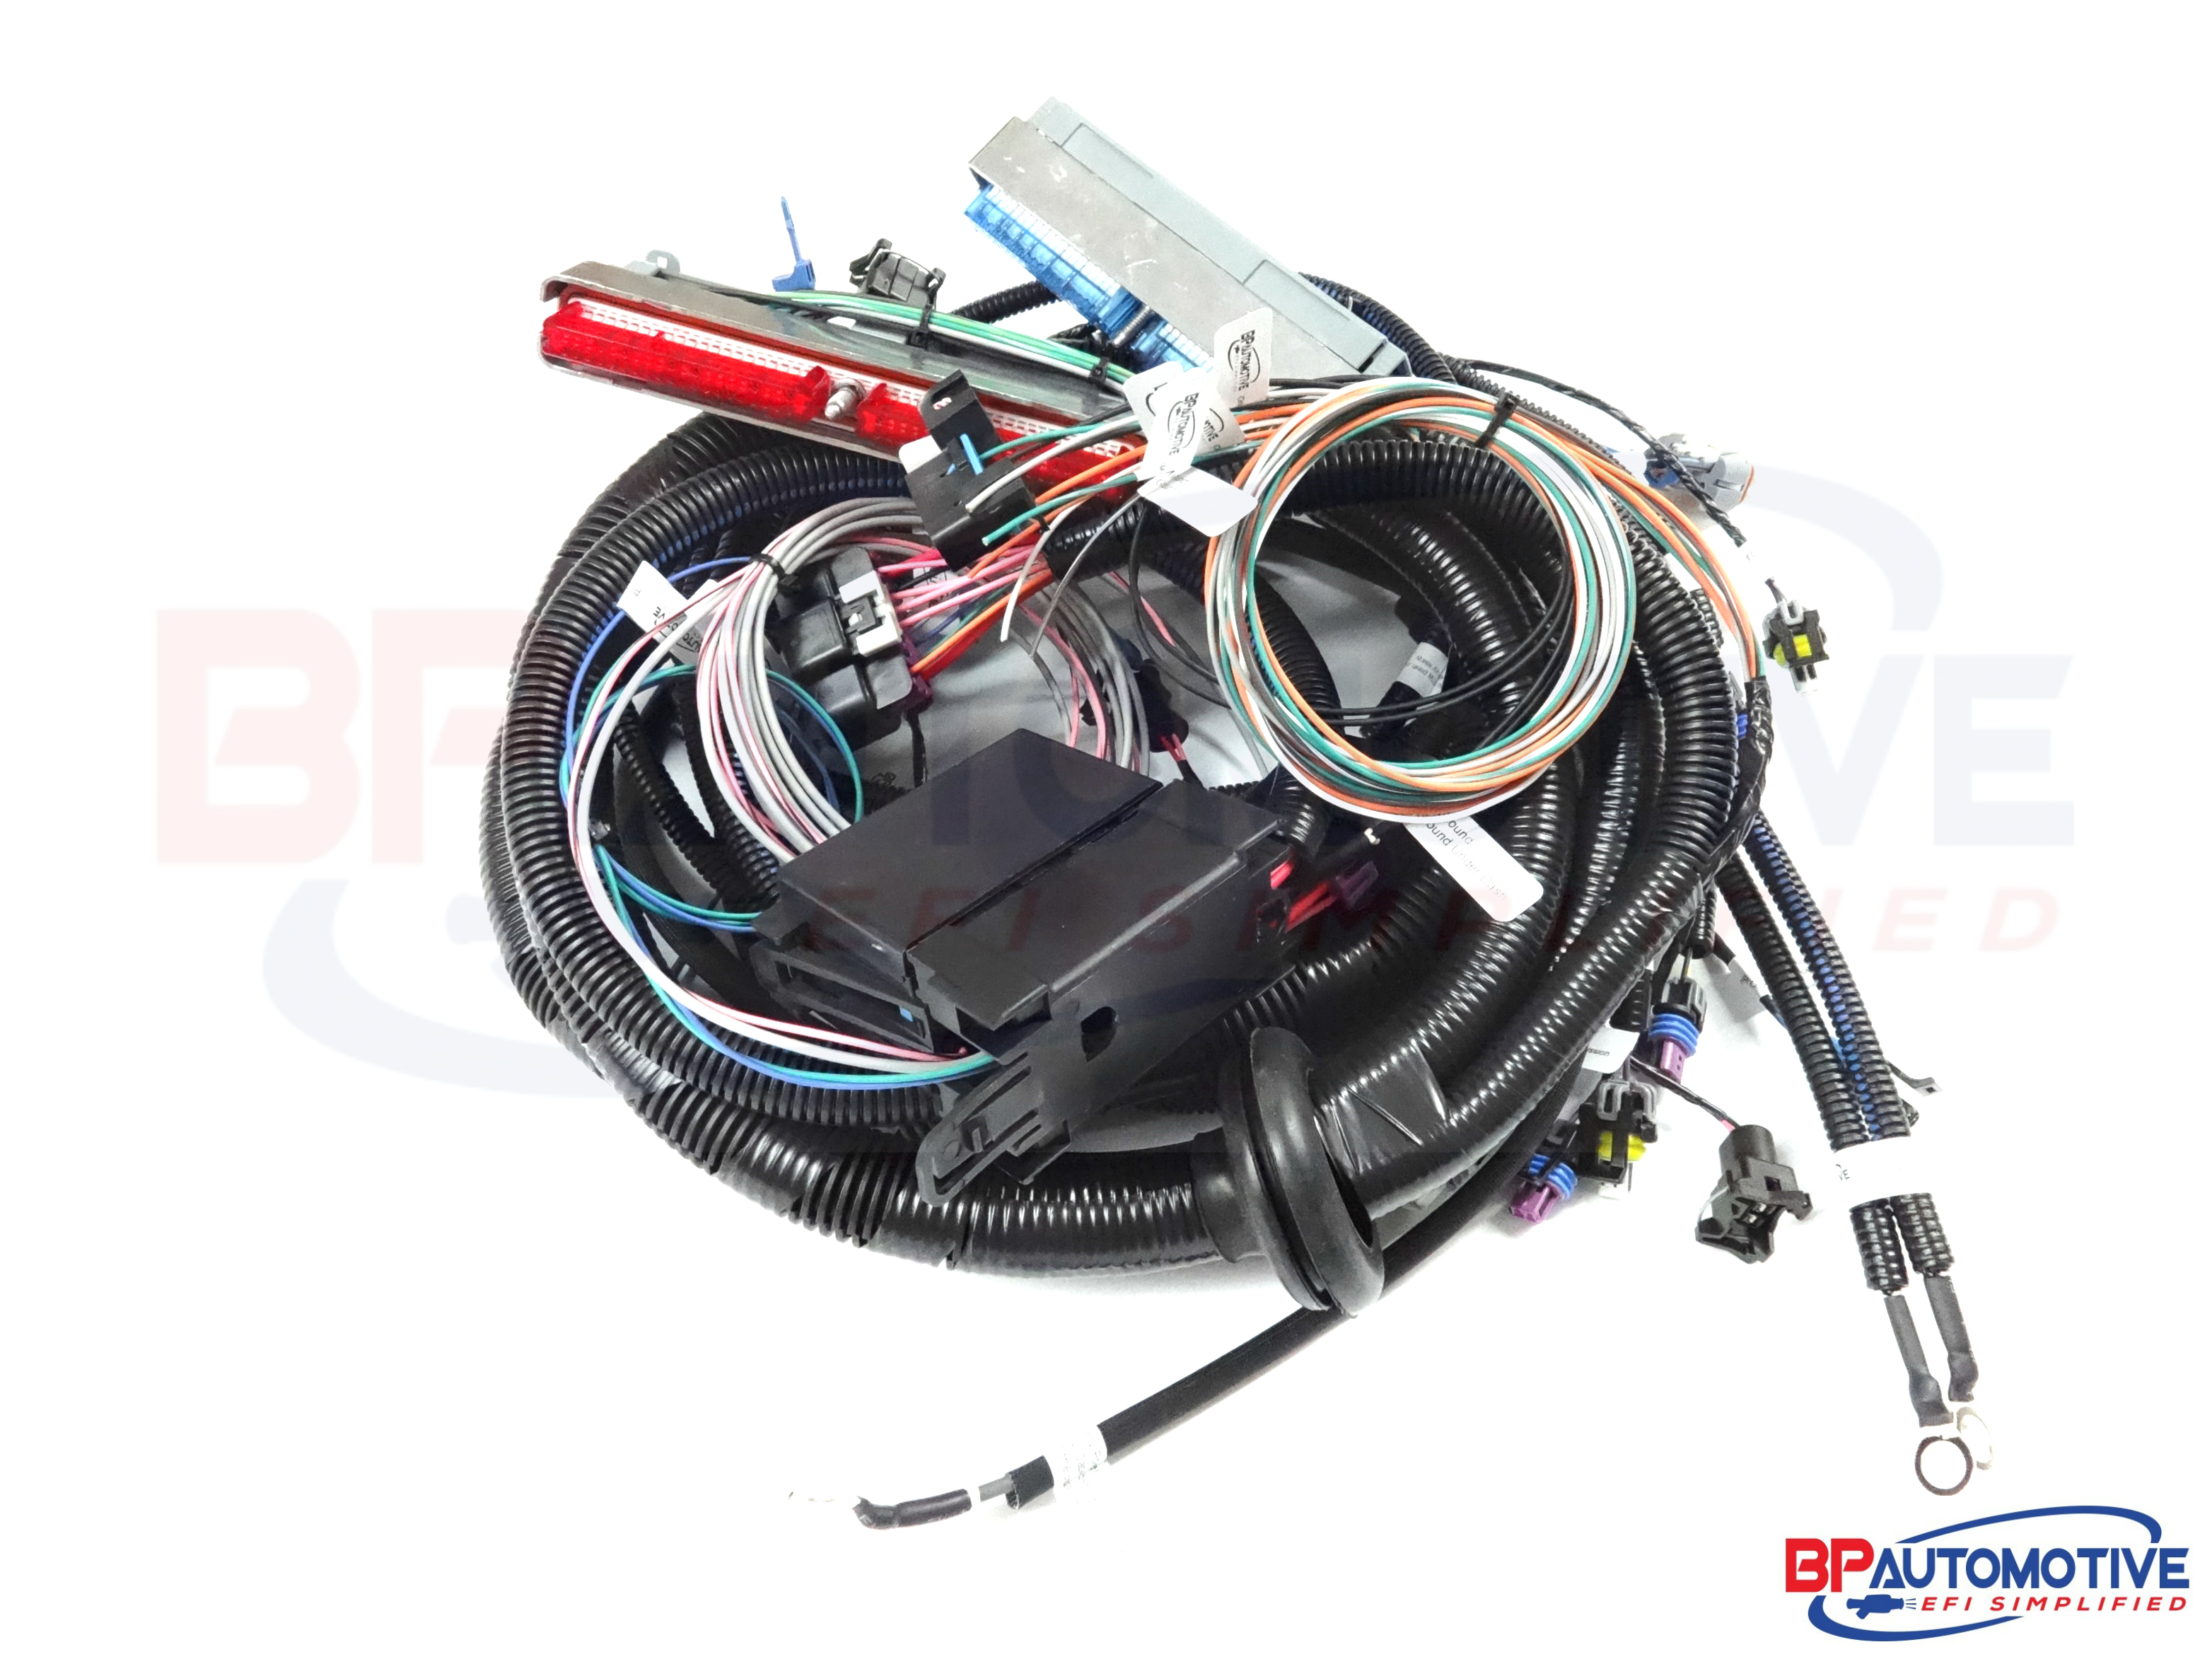 lt1 4l60e 24x conversion standalone swap harness rh bp automotive com